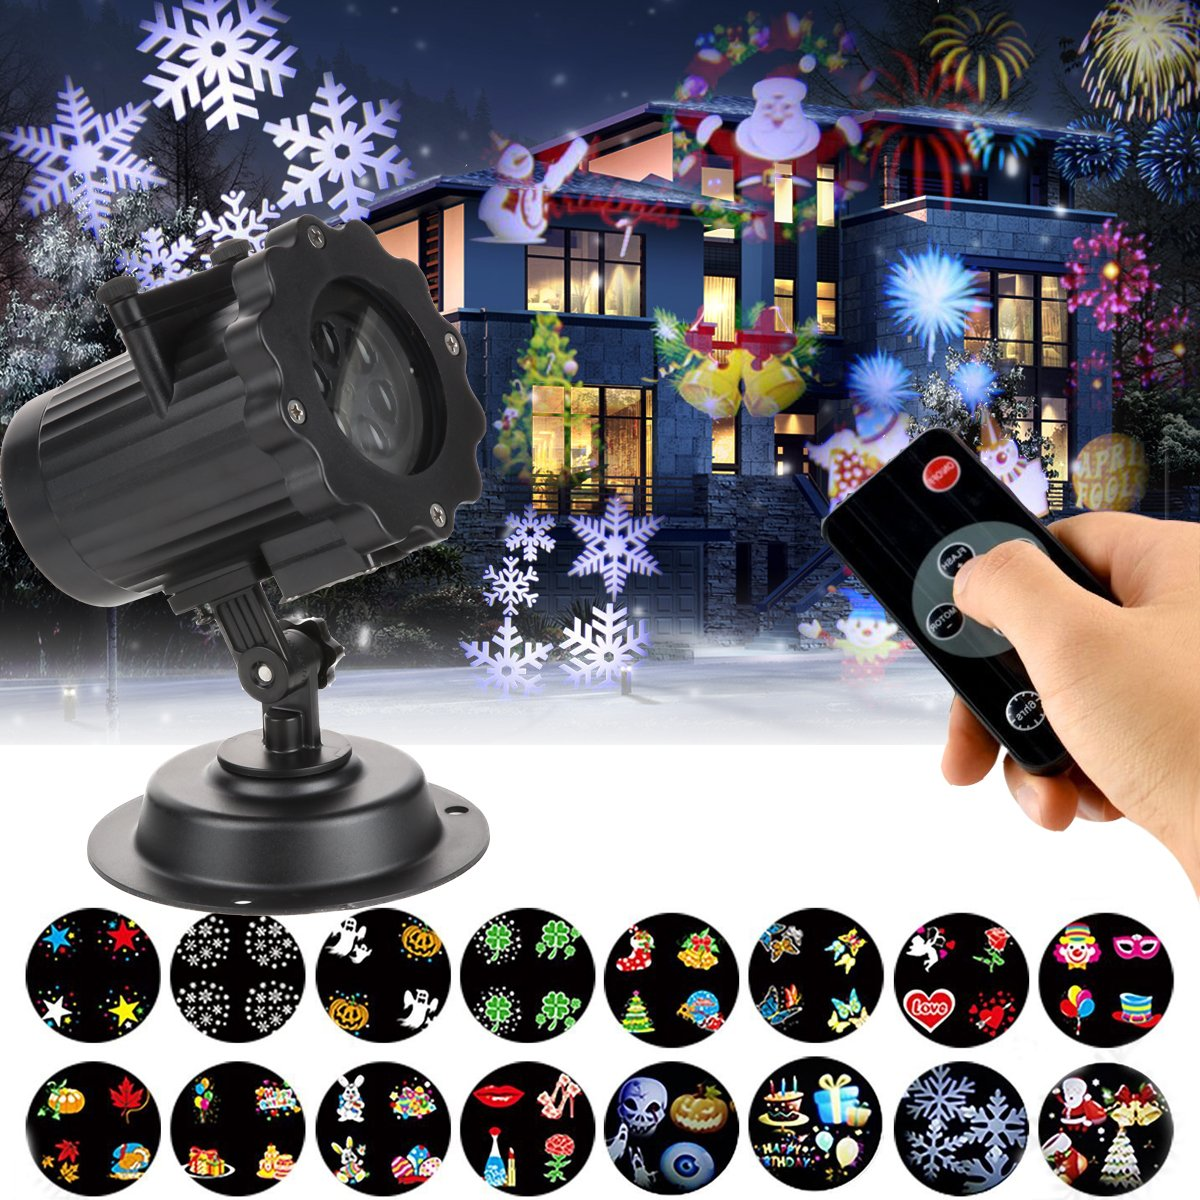 LED Projector Lights, KOLIER Landscape Spotlight with Interchangeable 16 Slides Waterproof Holiday Projector Light with Remote Control for Party / Birthday by KOLIER (Image #1)